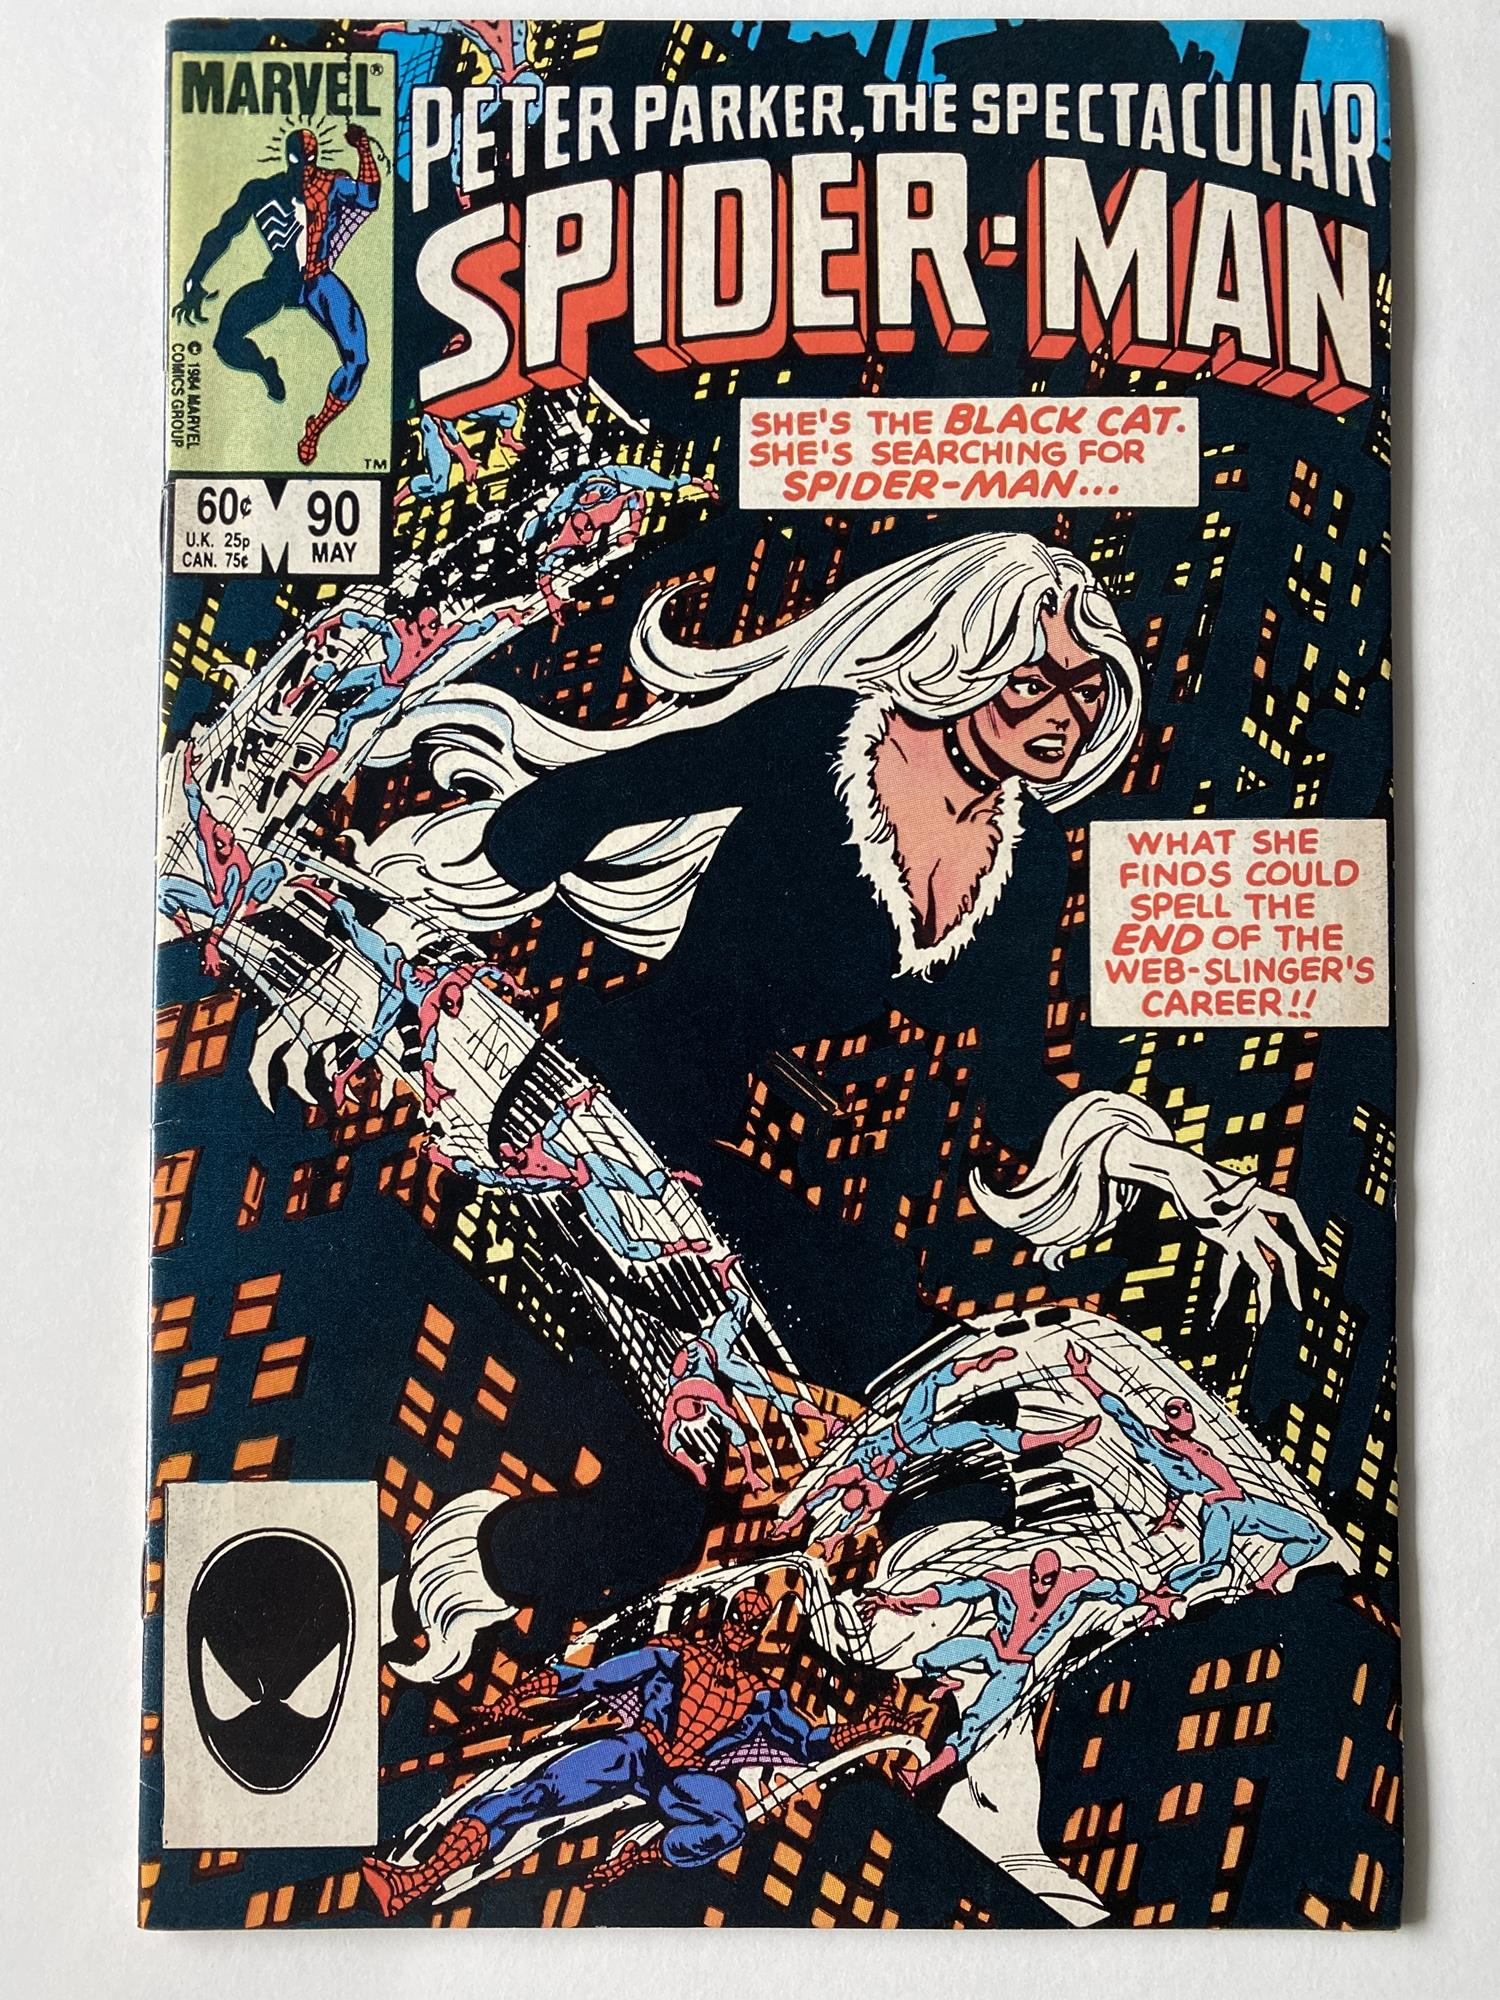 Lot 25 - SPECTACULAR SPIDER-MAN # 90 (1984 - MARVEL - Cents/Pence Copy) - First black costume in title, which